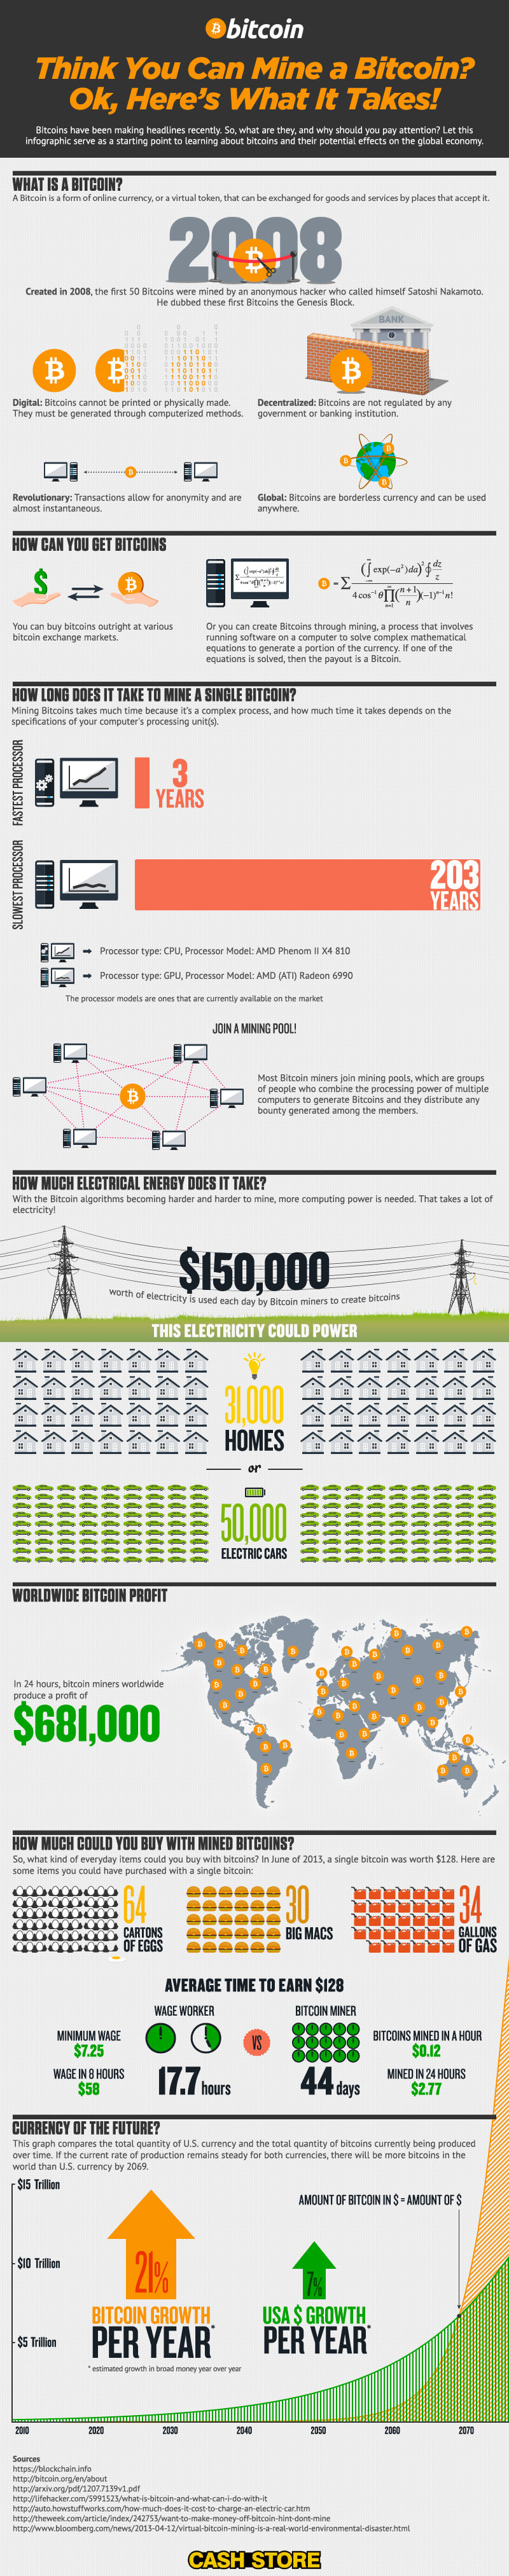 think-you-can-mine-bitcoin-ok-heres-what-it-takes-infographic